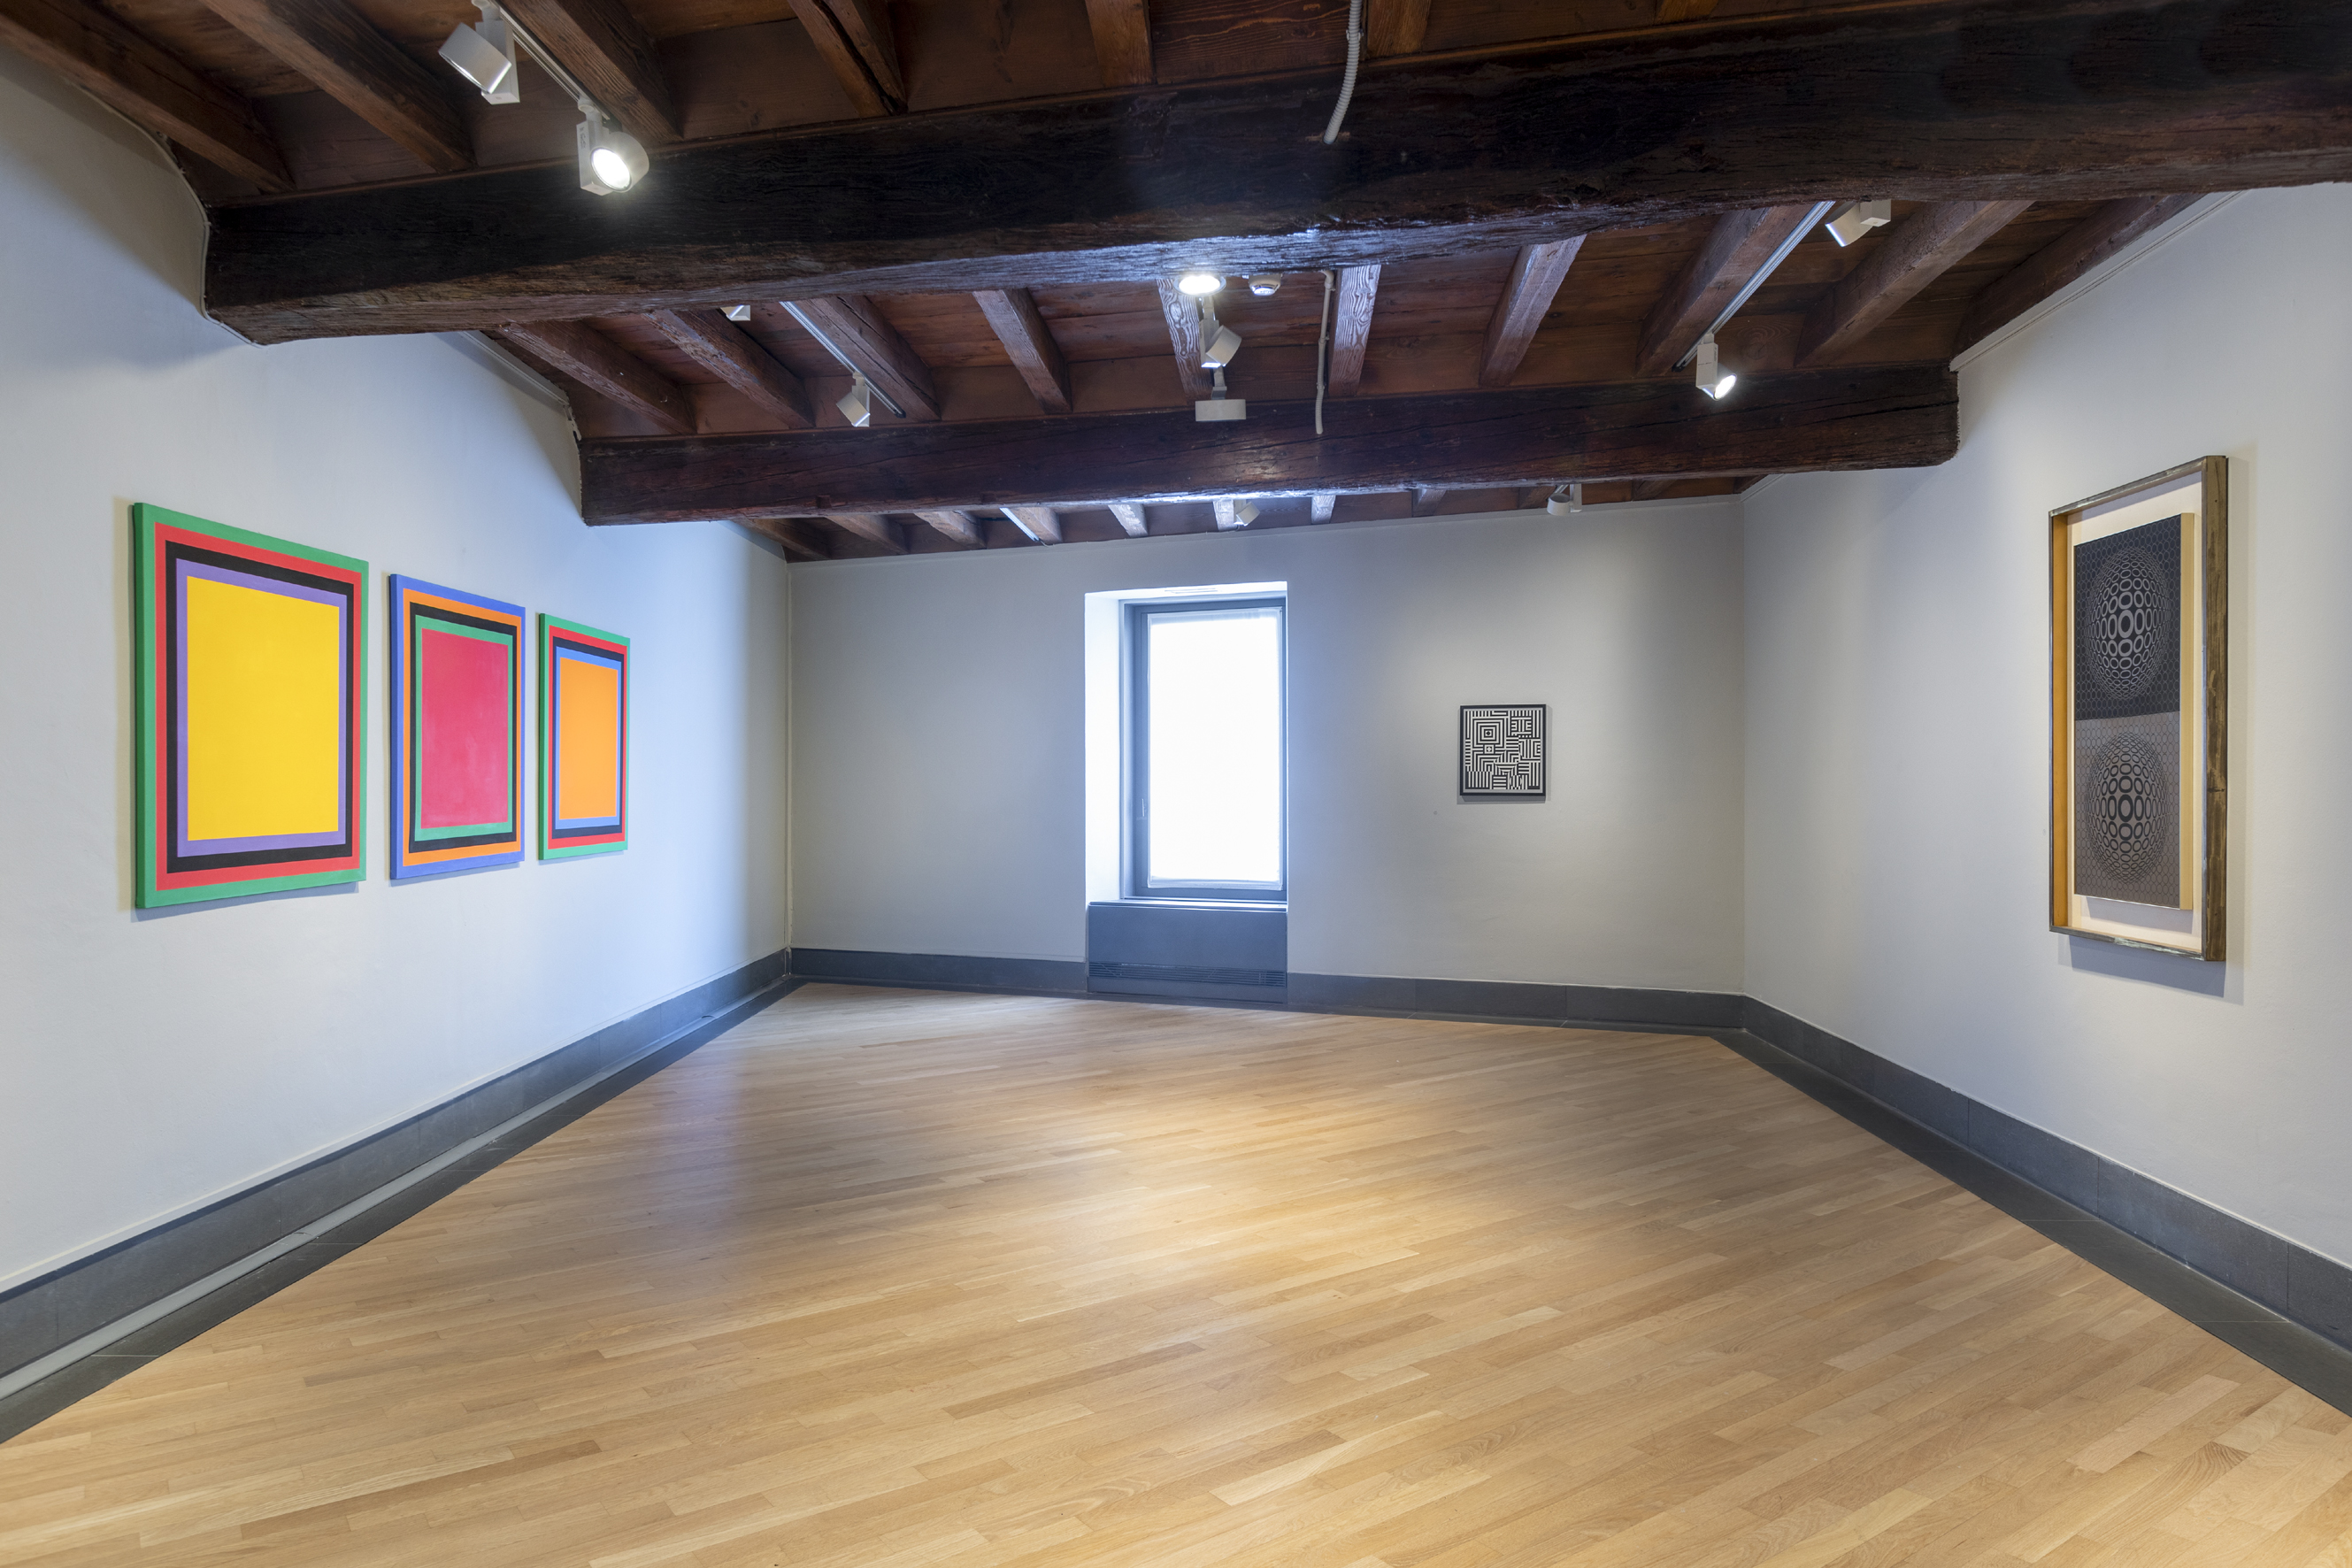 Art Informel, Geometric Abstraction, and Arte Povera Fill the Rooms of Bergamo, Italy's GAMeC -